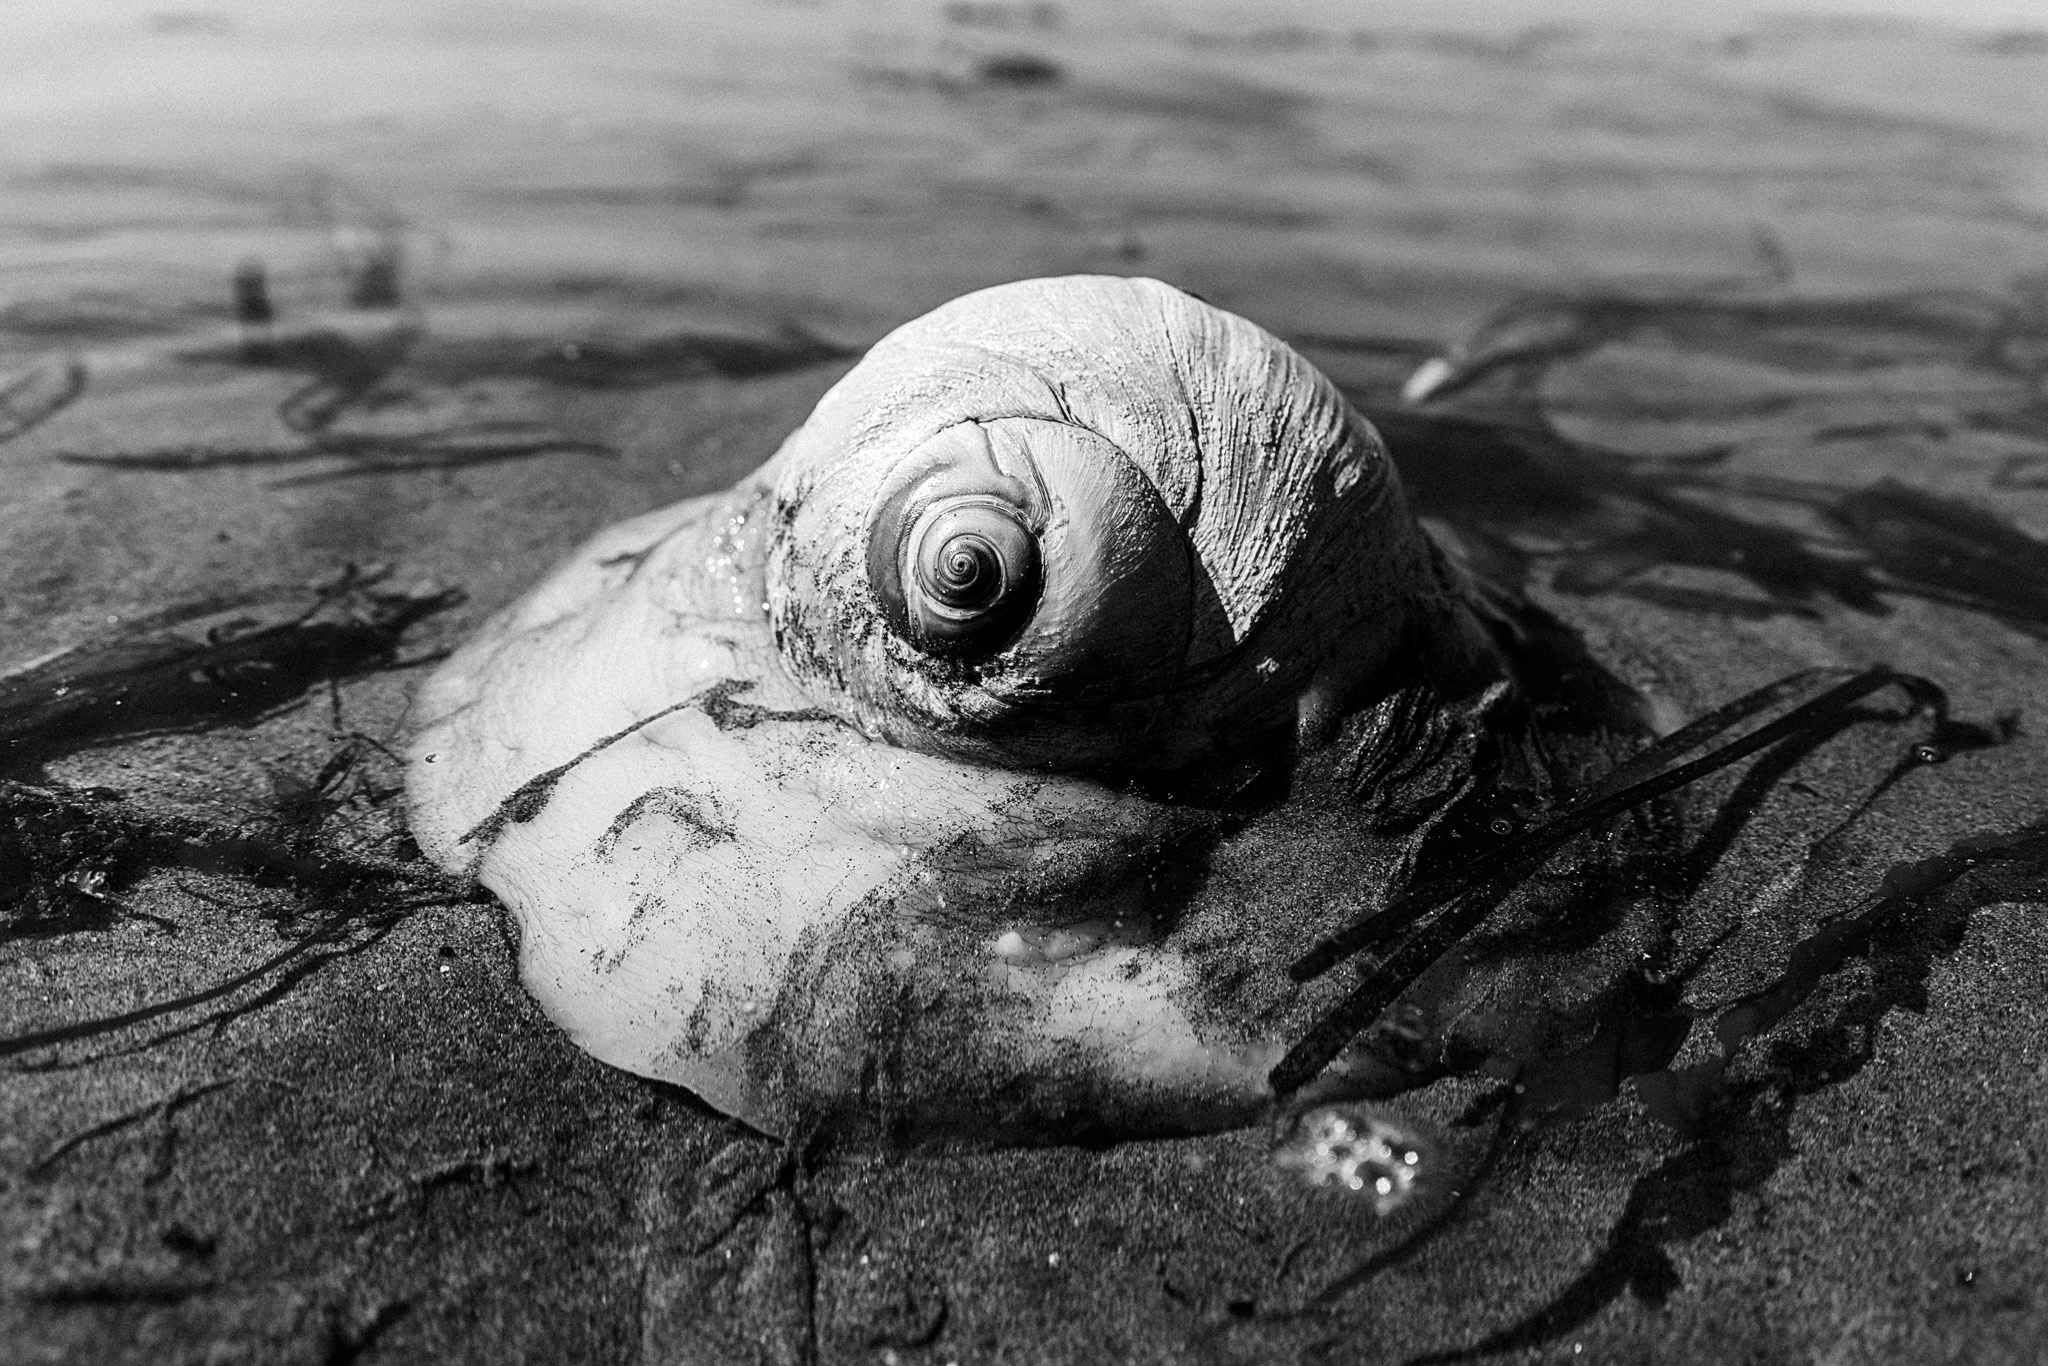 Moon Snail digging in the sand on a beach in Seattle, Washington